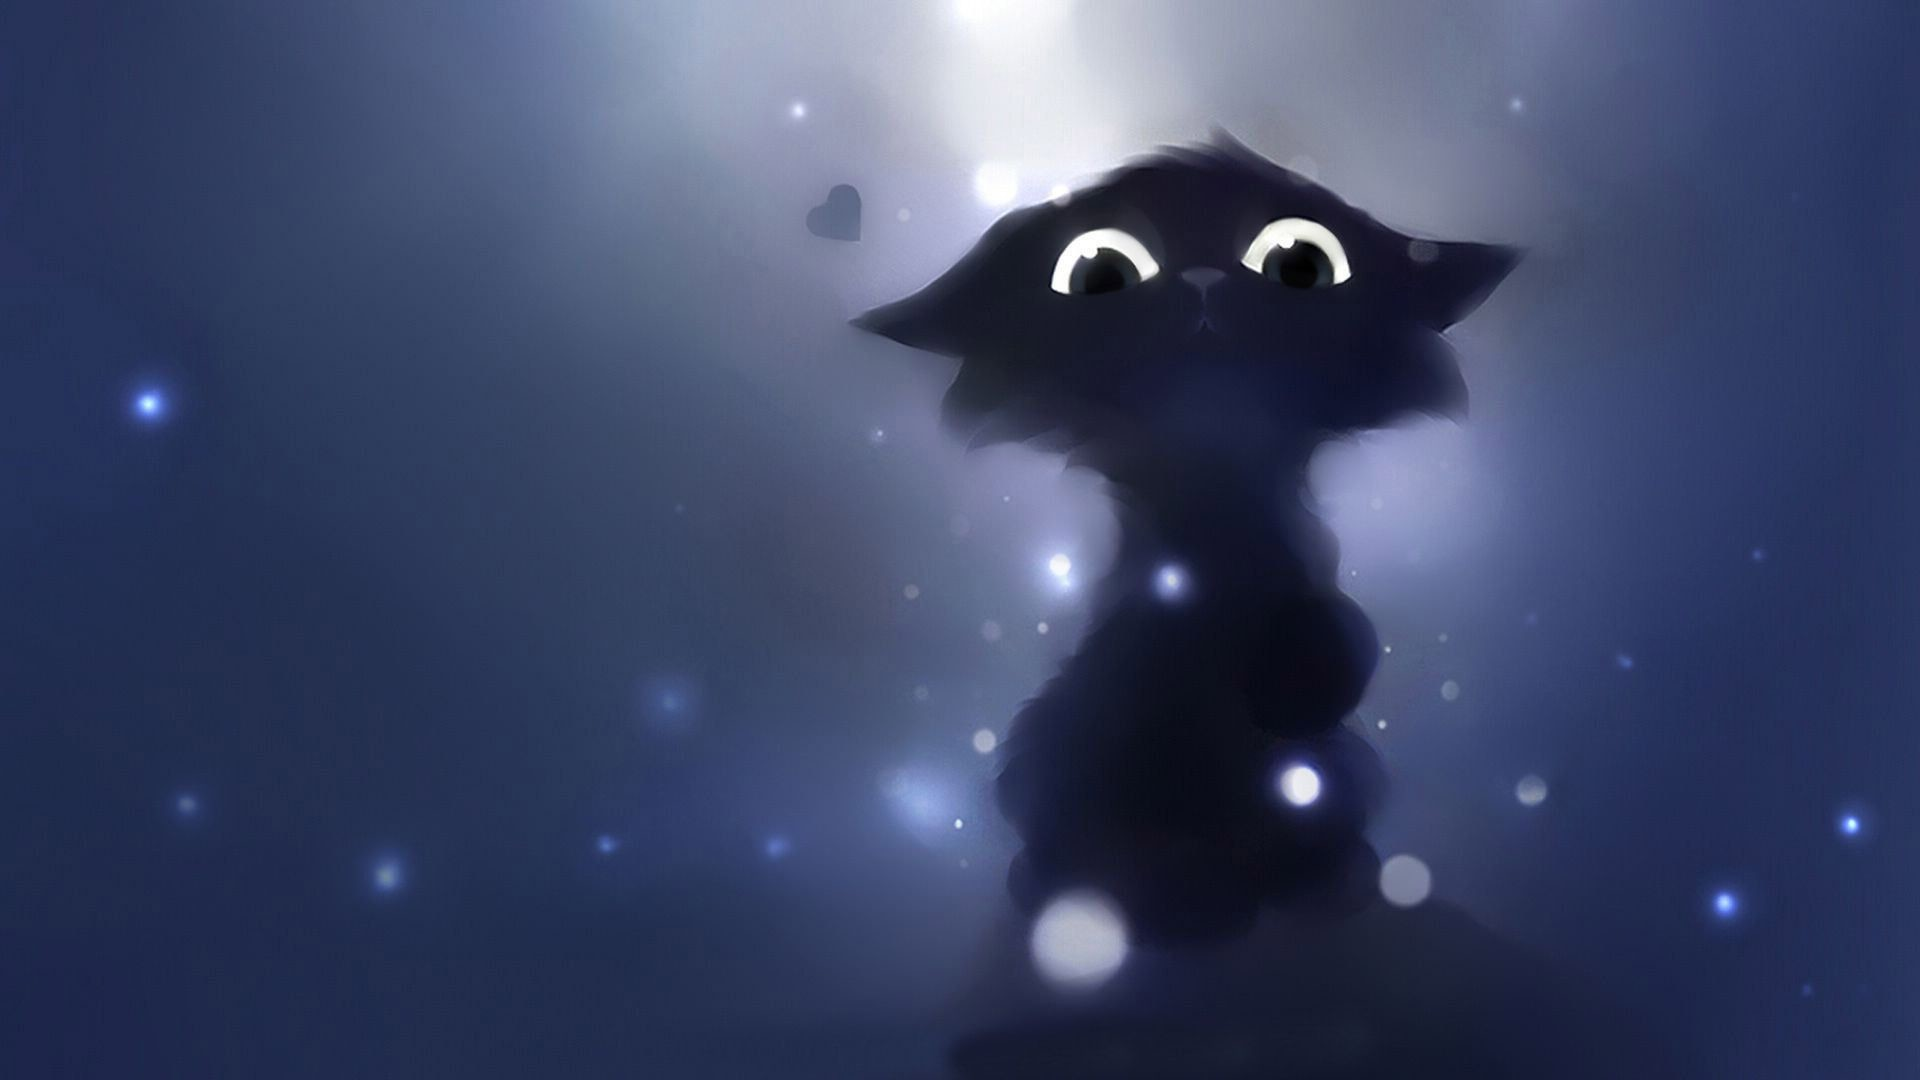 … anime cats wallpapers wallpaper cave …